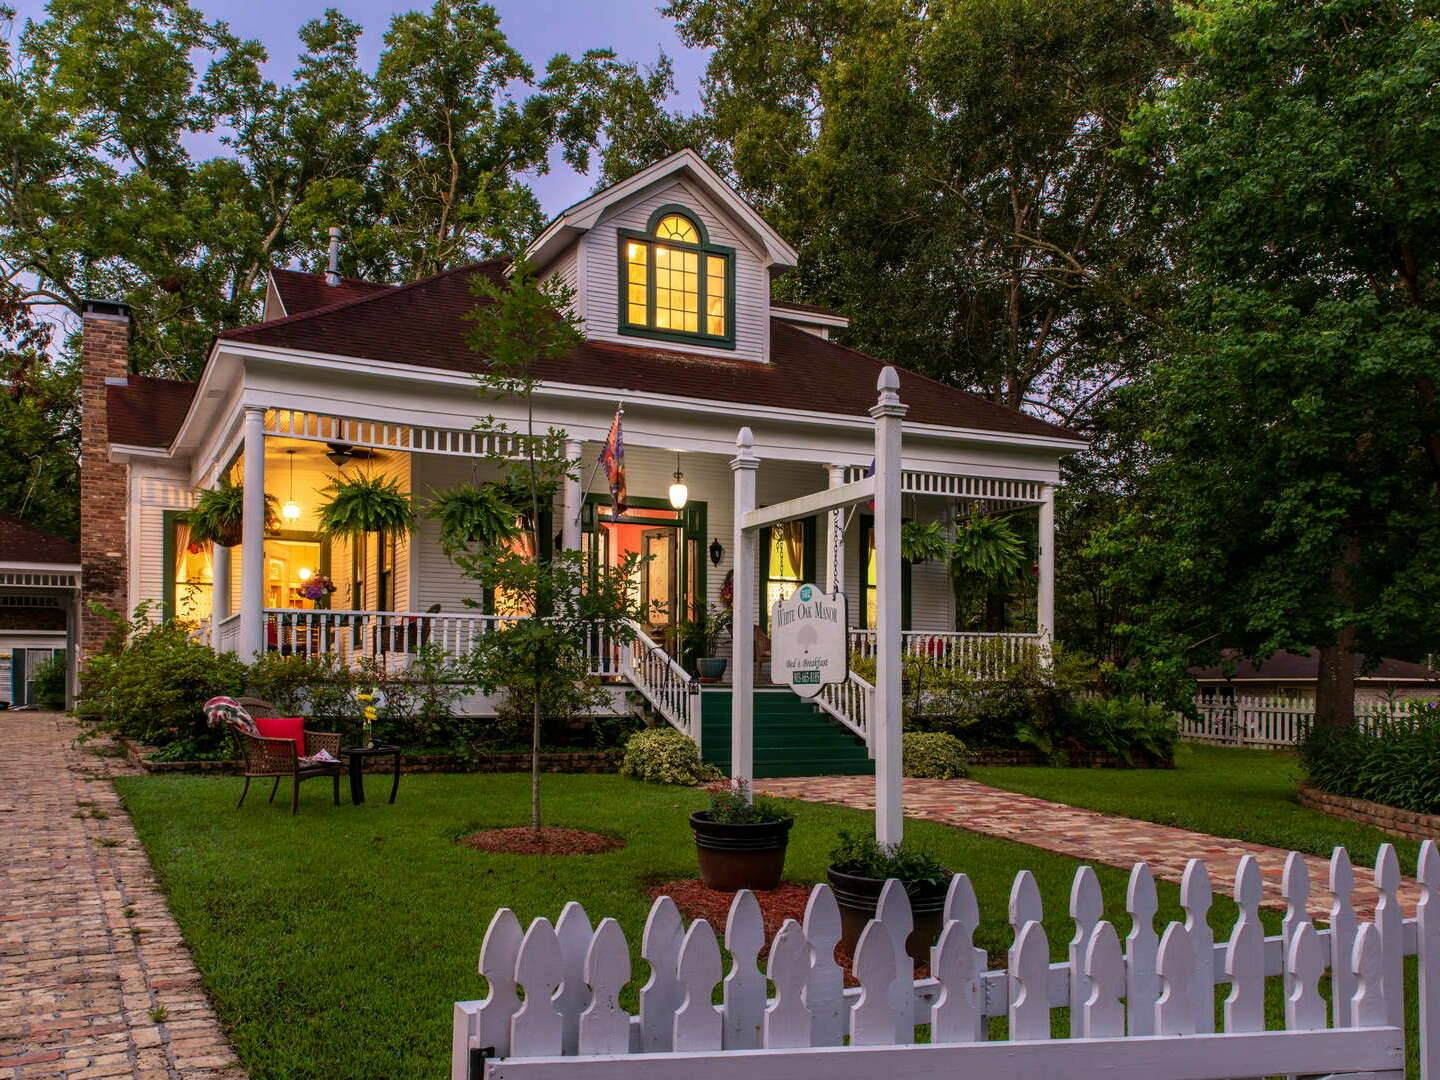 Jefferson Bed and Breakfast